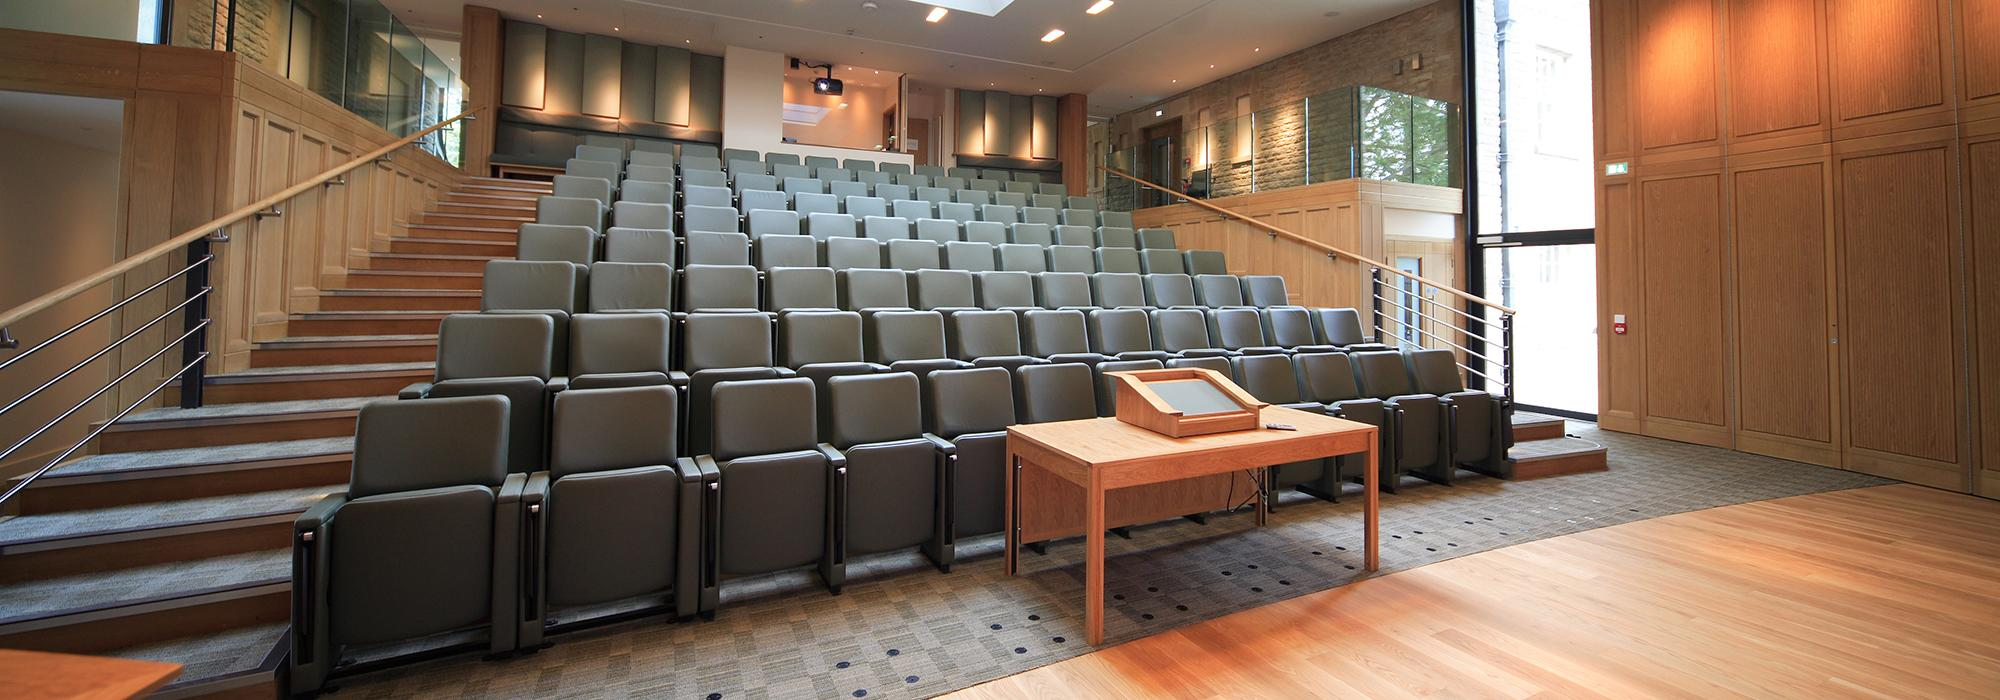 The TS Eliot Lecture Theatre